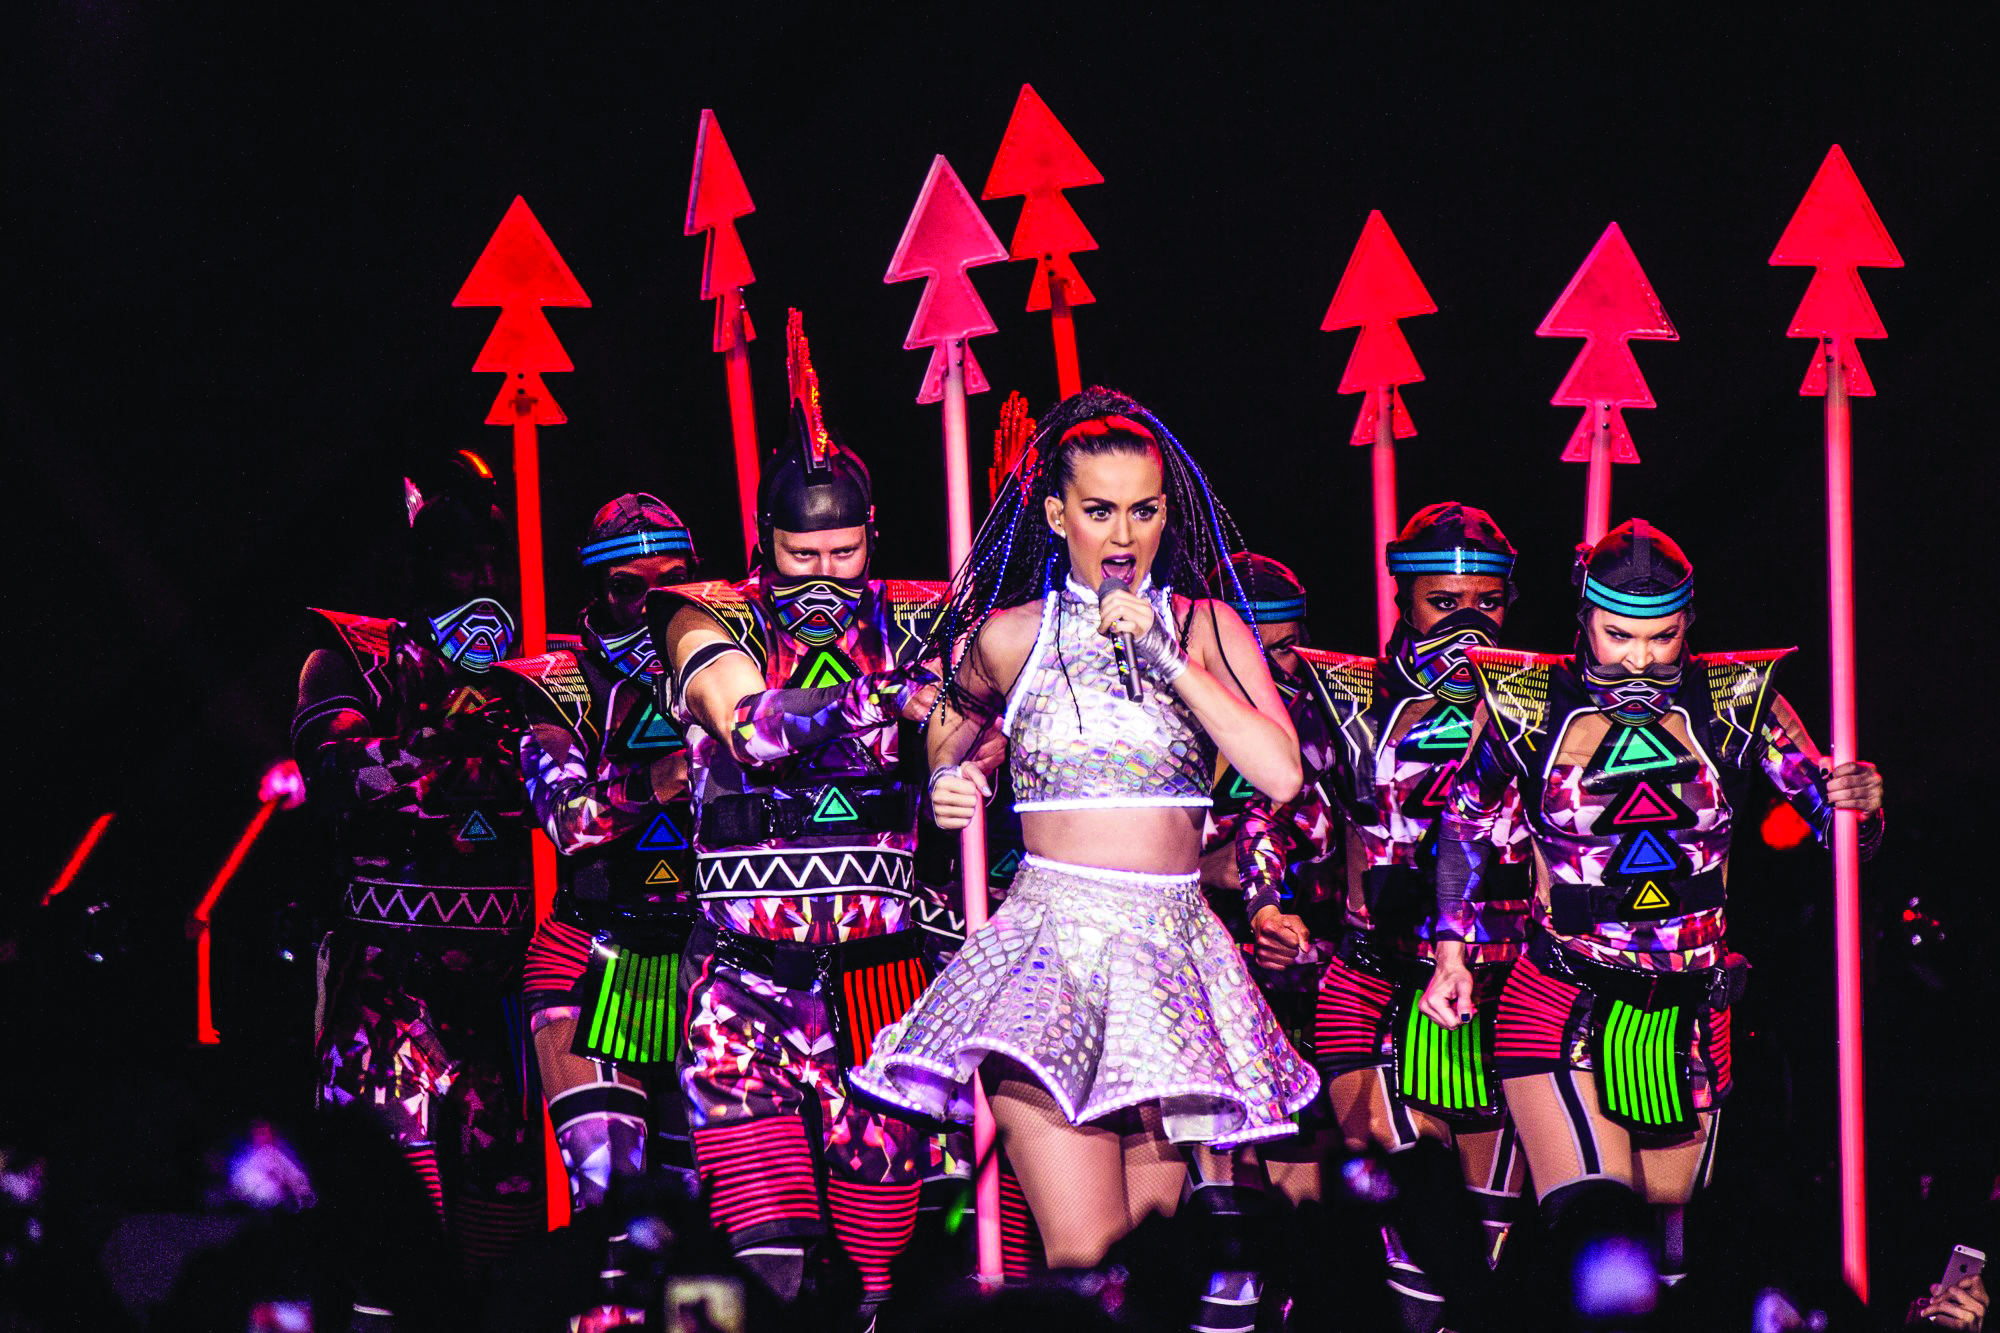 Katy Perry's Prismatic Tour